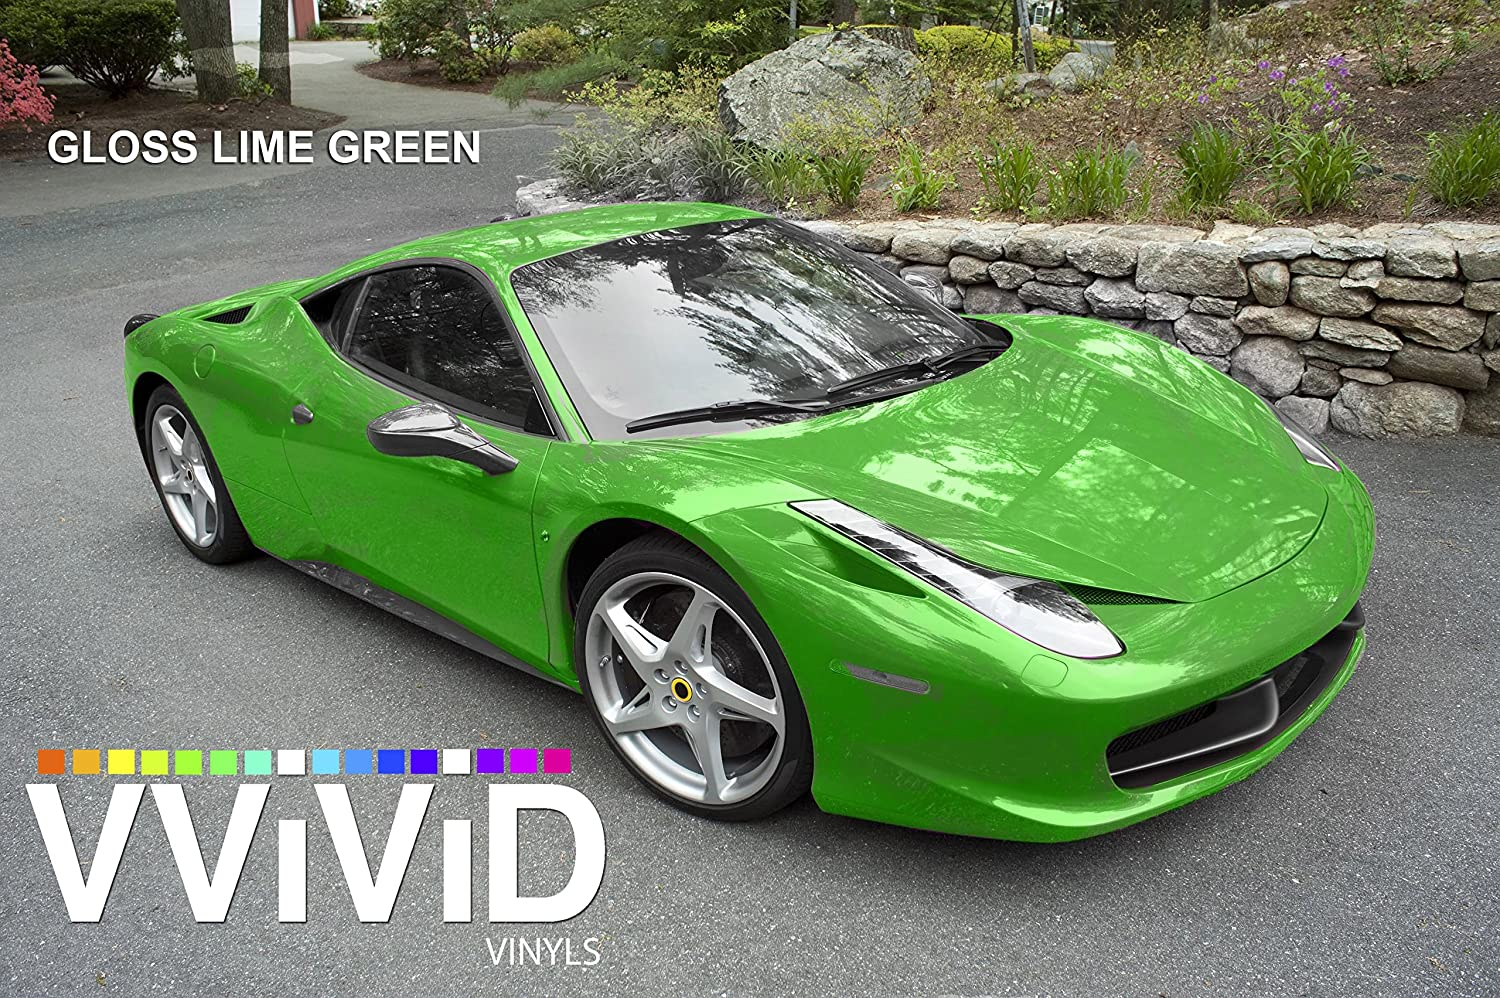 VViViD Lime Green Gloss Car Wrap Vinyl Roll with Air Release 3mil Hood, Roof or Trunk Wrap Kit 6ft x 5ft